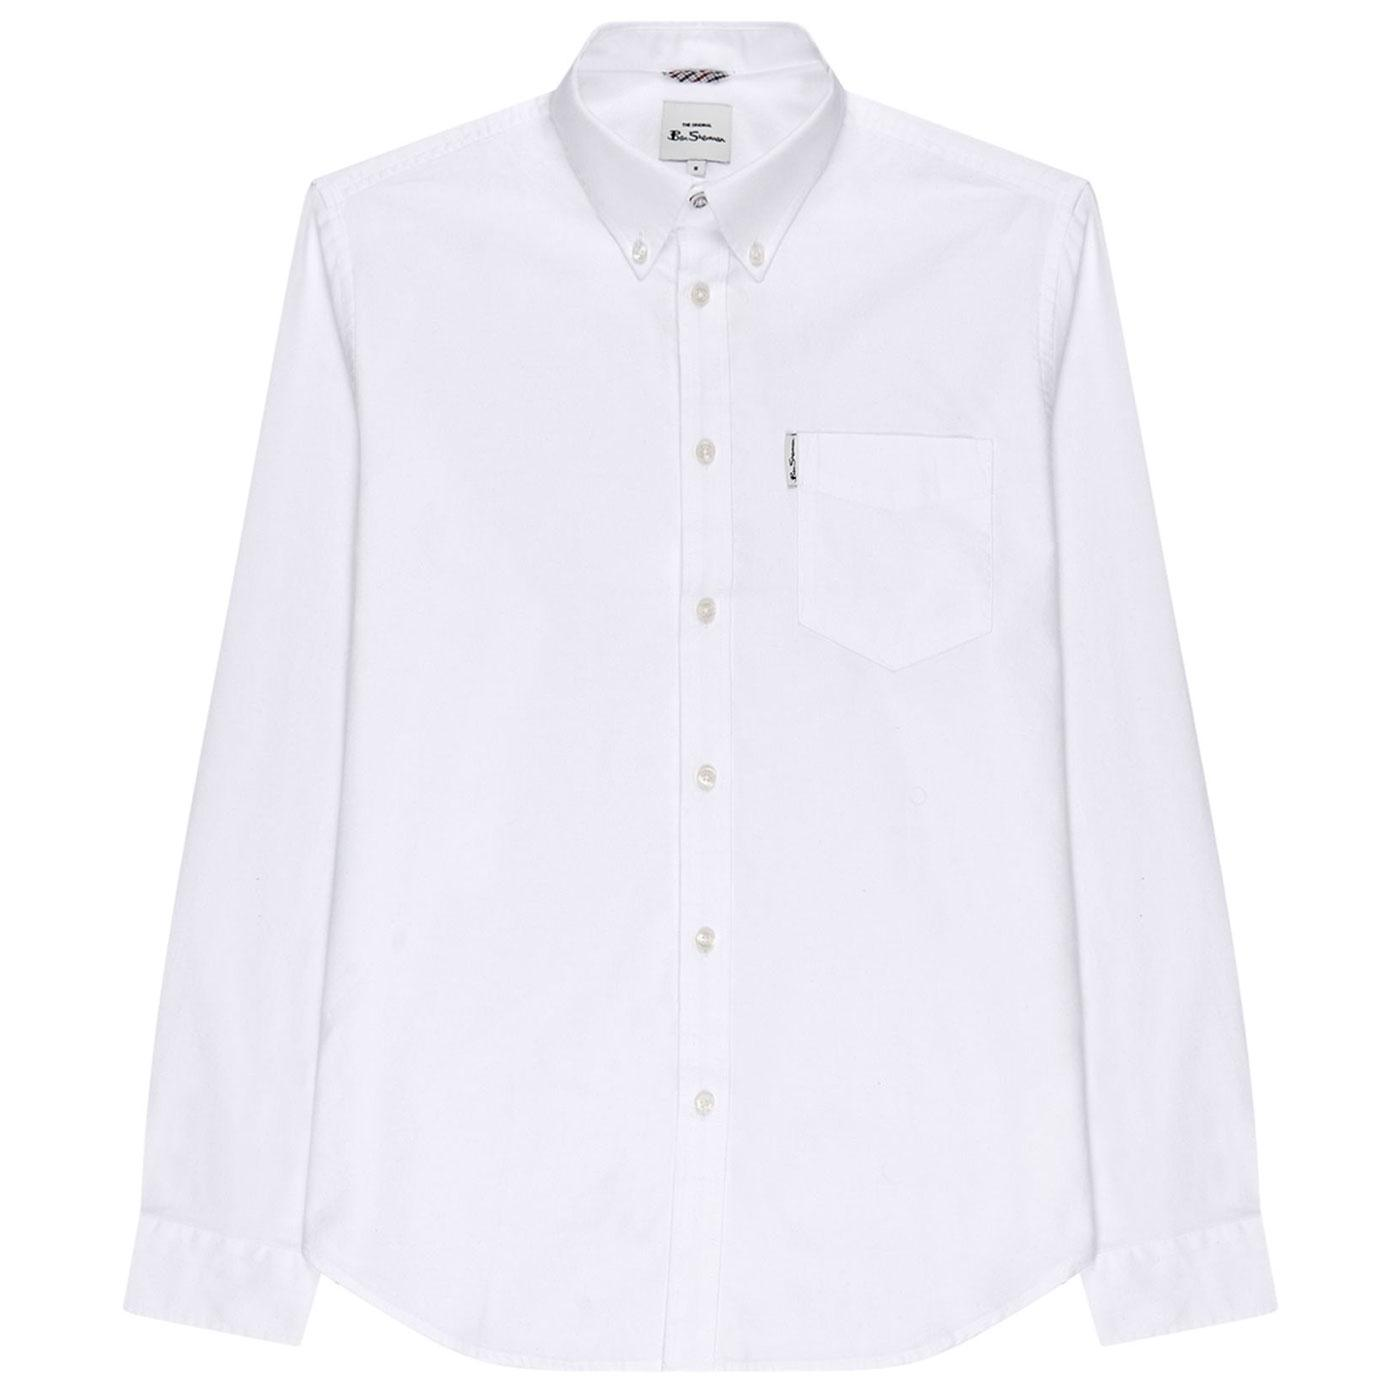 BEN SHERMAN Signature Mod Oxford Shirt in White